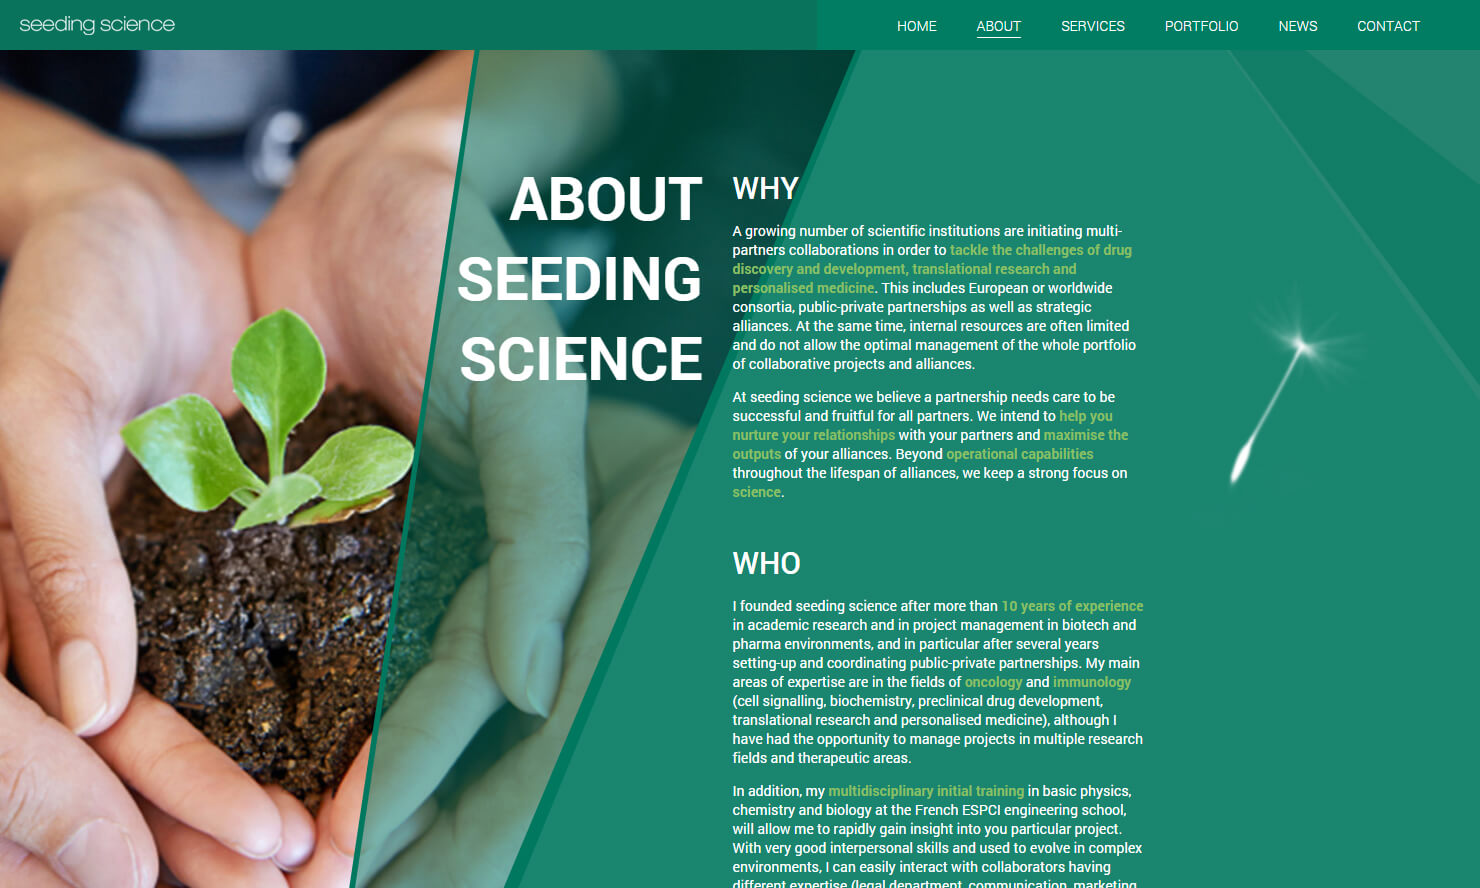 Seeding Science - About